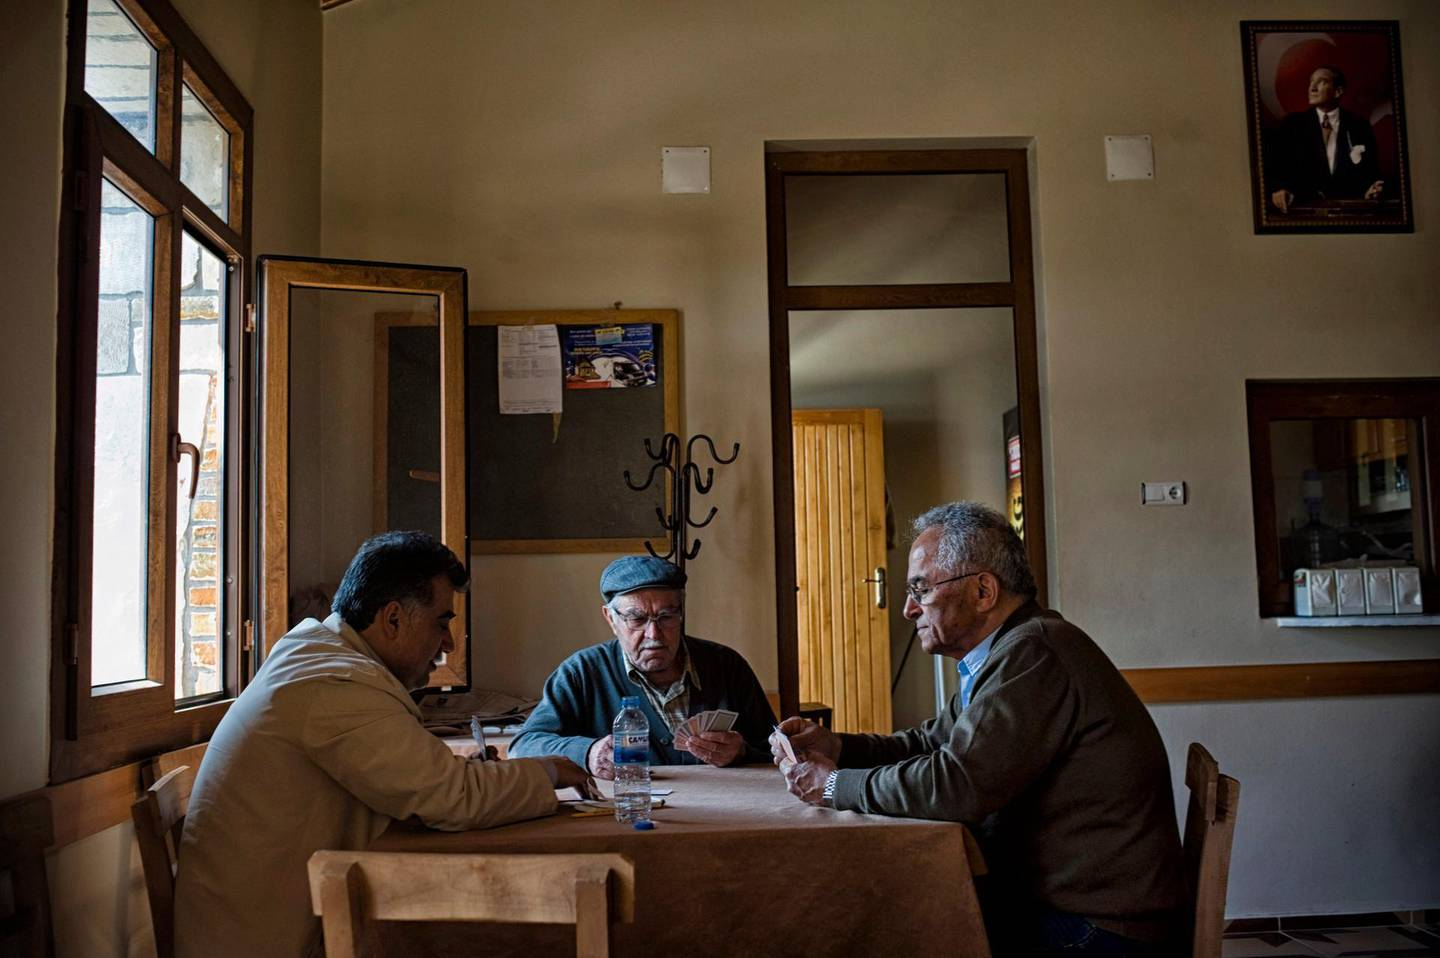 April 04, 2012.  Vakifli, Turkey - A group of Armenian men play cards in the local cafe in Vakifli, overlooked by a photograph of Kemal Ataturk.  Vakfili, a town of about 80 families near the border between Syria and Turkey, is the only Armenian village left in Turkey after the Genocide of 1915 and the pogroms that followed it. Courtesy Scout Tufankjian *** Local Caption ***  rv25ap-cover story-p1.jpg